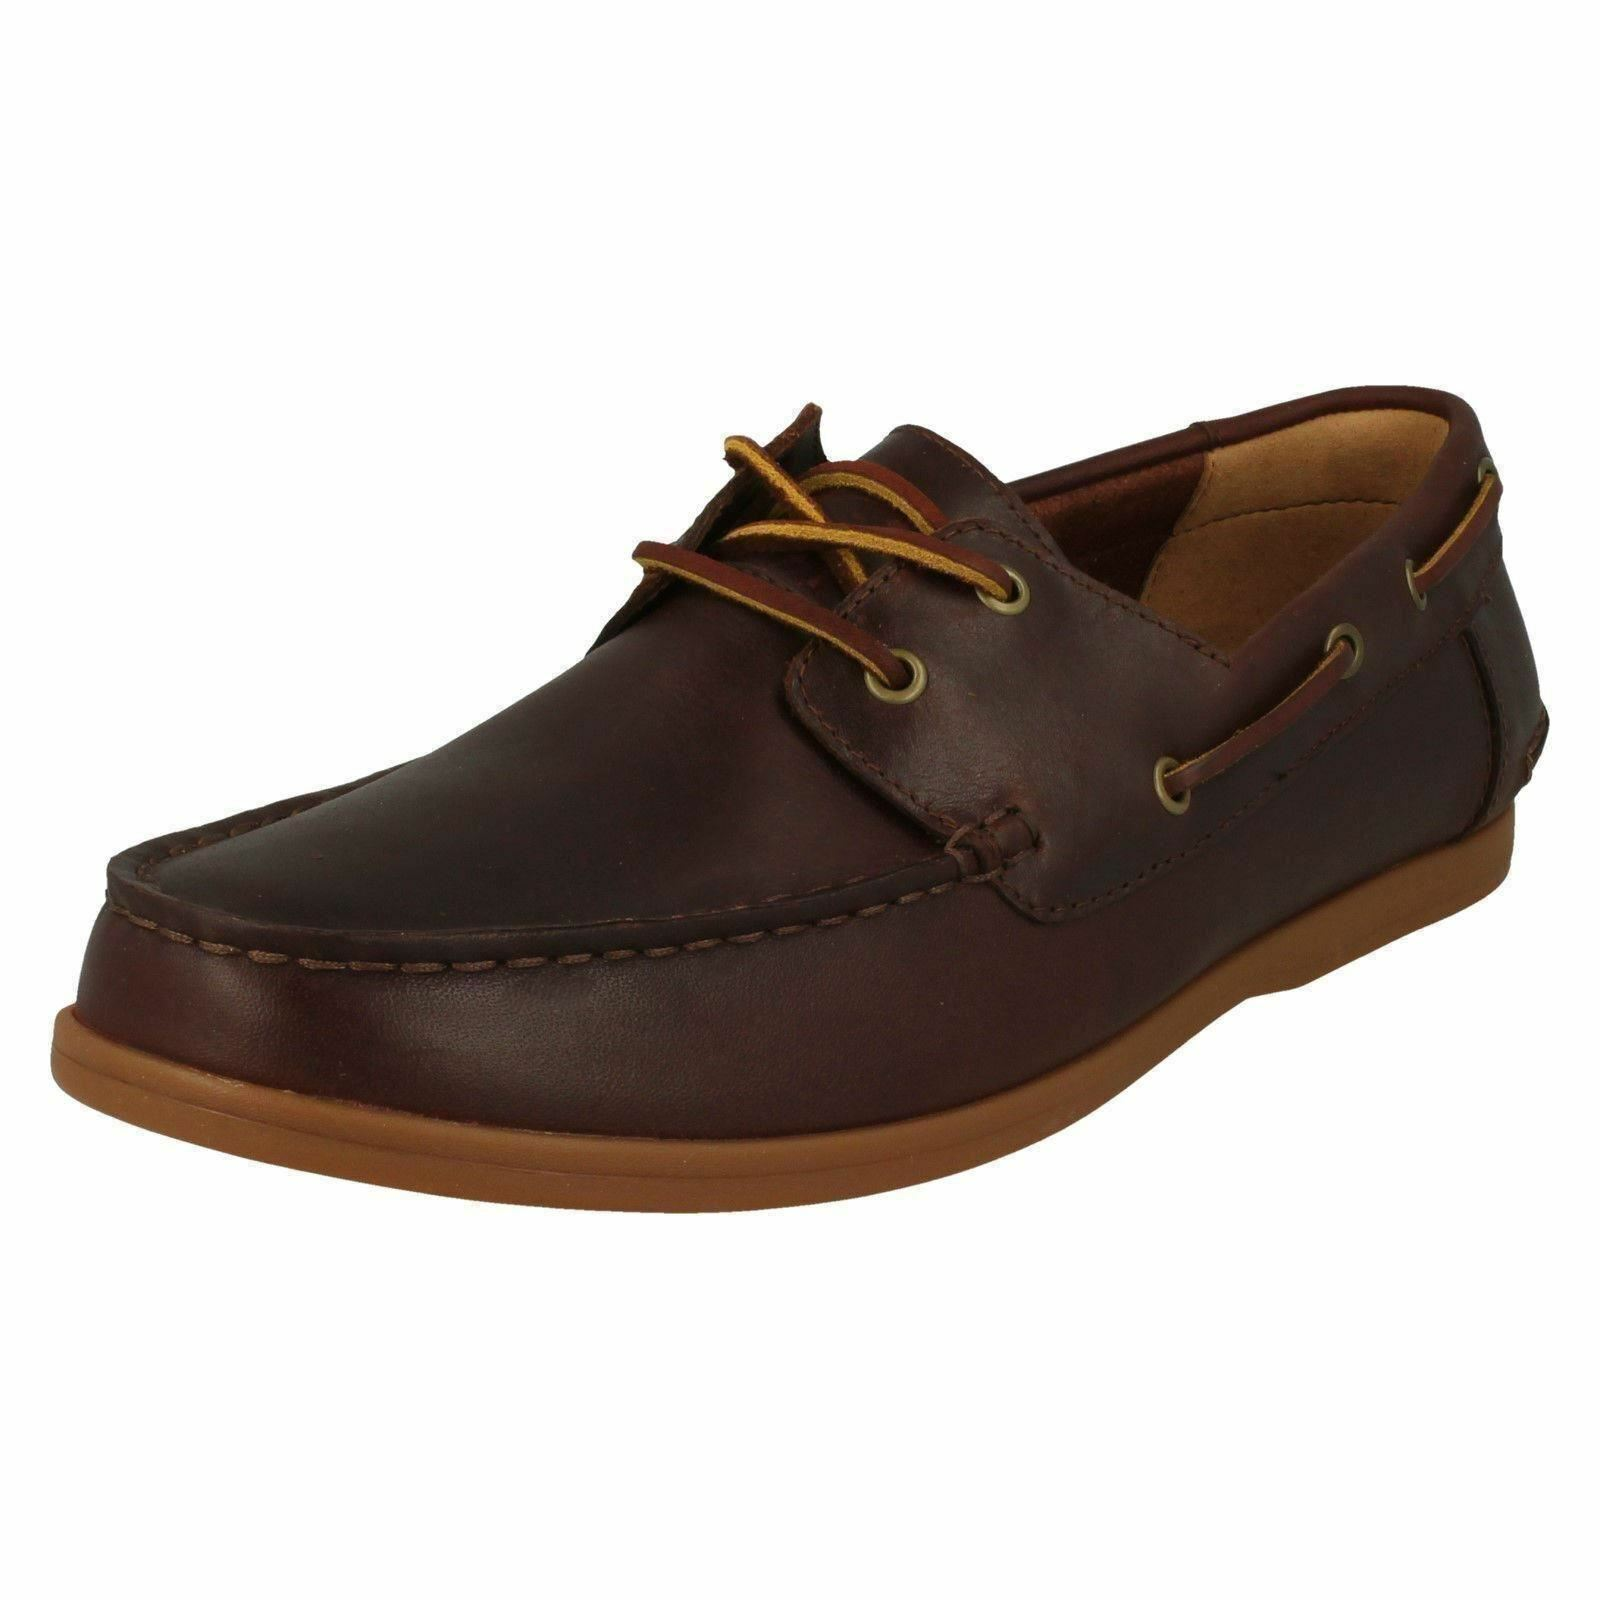 Clarks Morven Sail Mens Tan Leather Boat Shoe